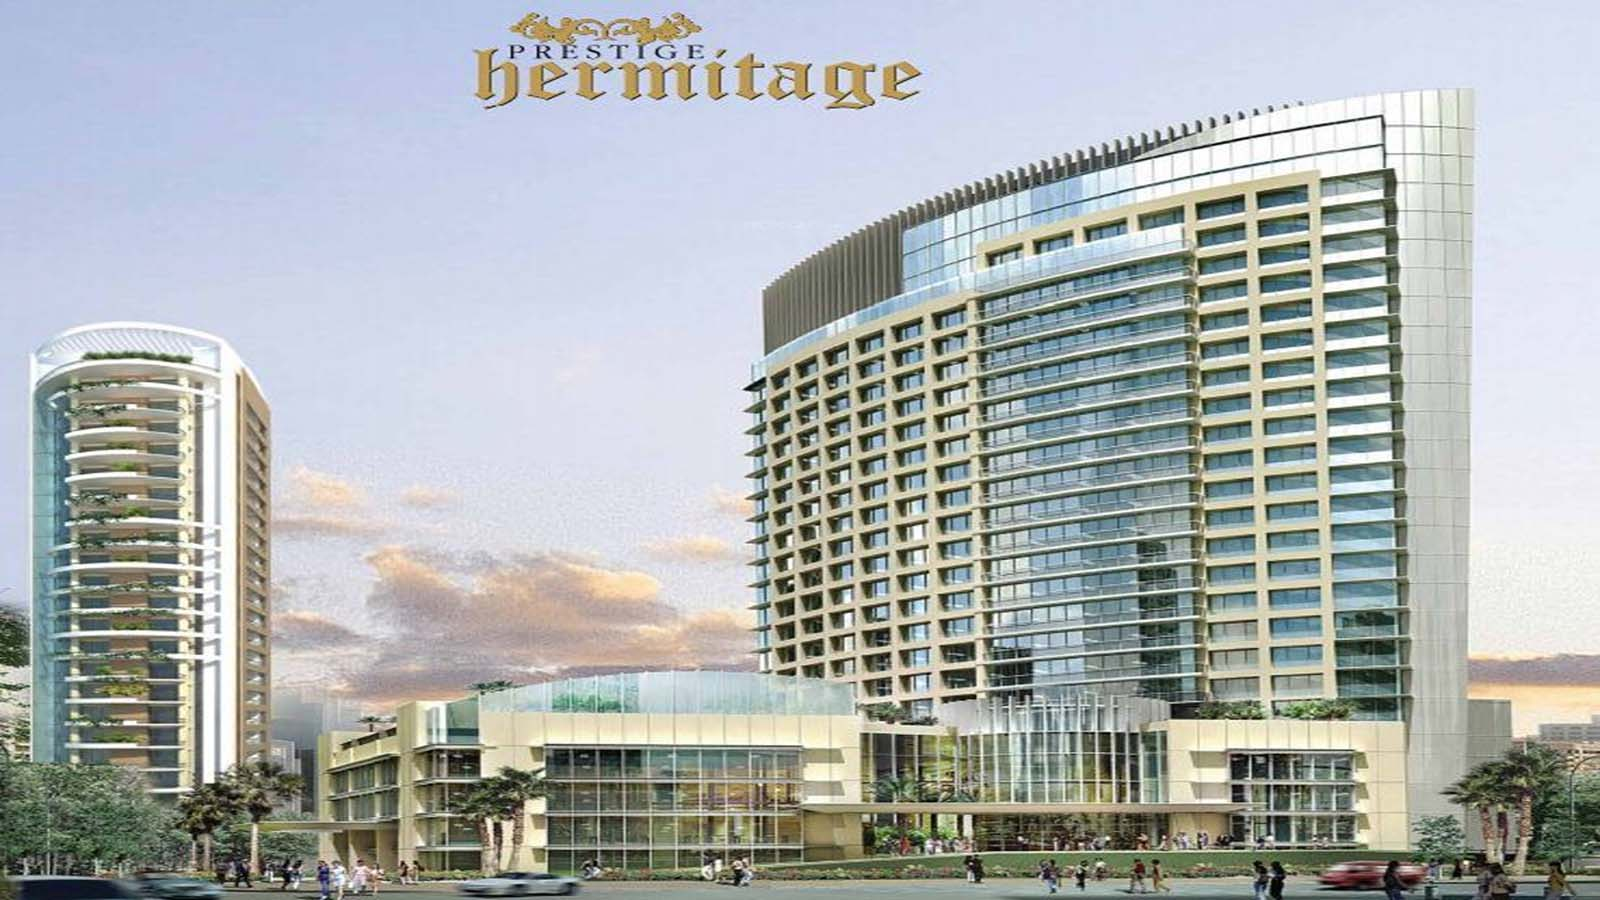 prestige-group-hermitage-elevation-754556